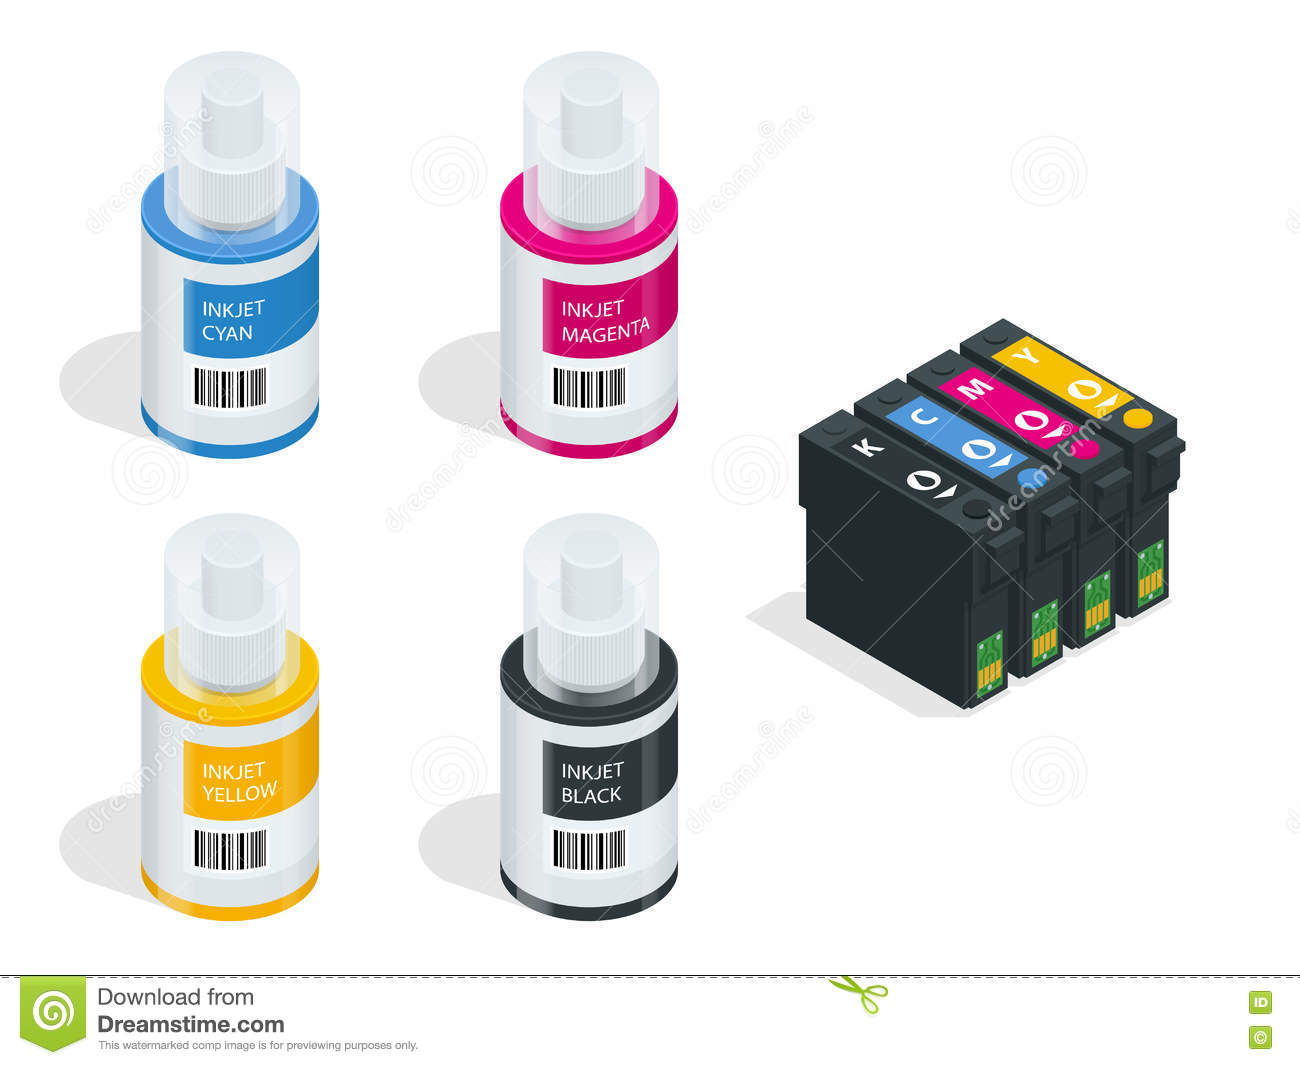 Isometric CMYK set of cartridges for ink jet printer and color chart. Empty refillable cartridges for colour inkjet